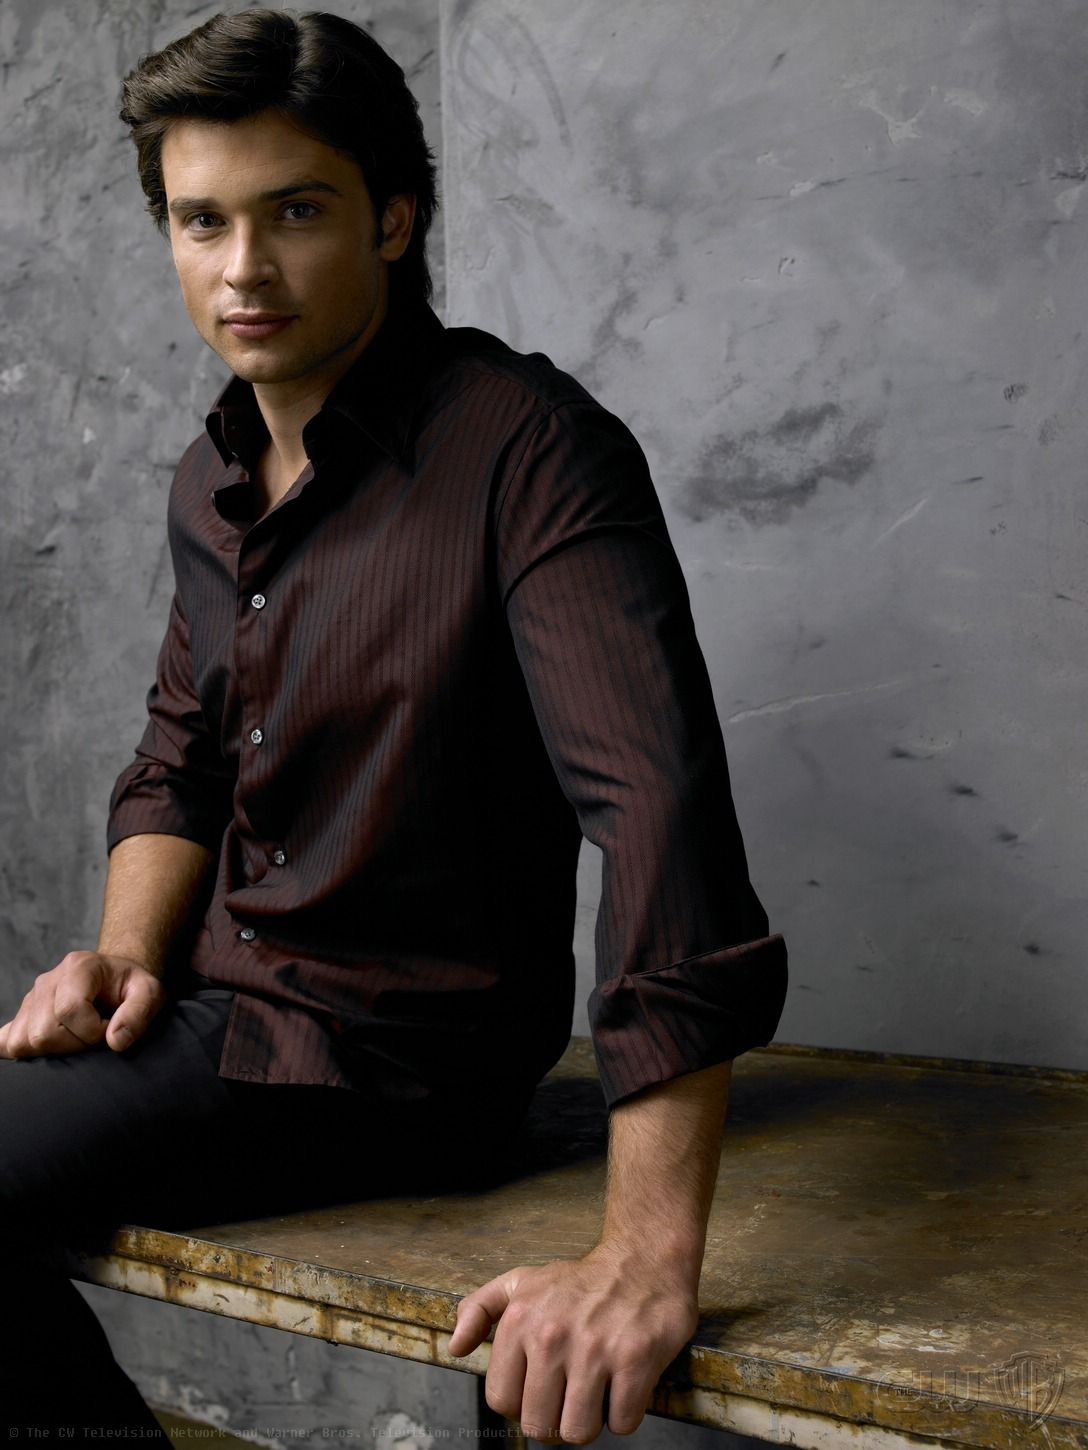 S6_099.jpg Click image to close this window Tom welling